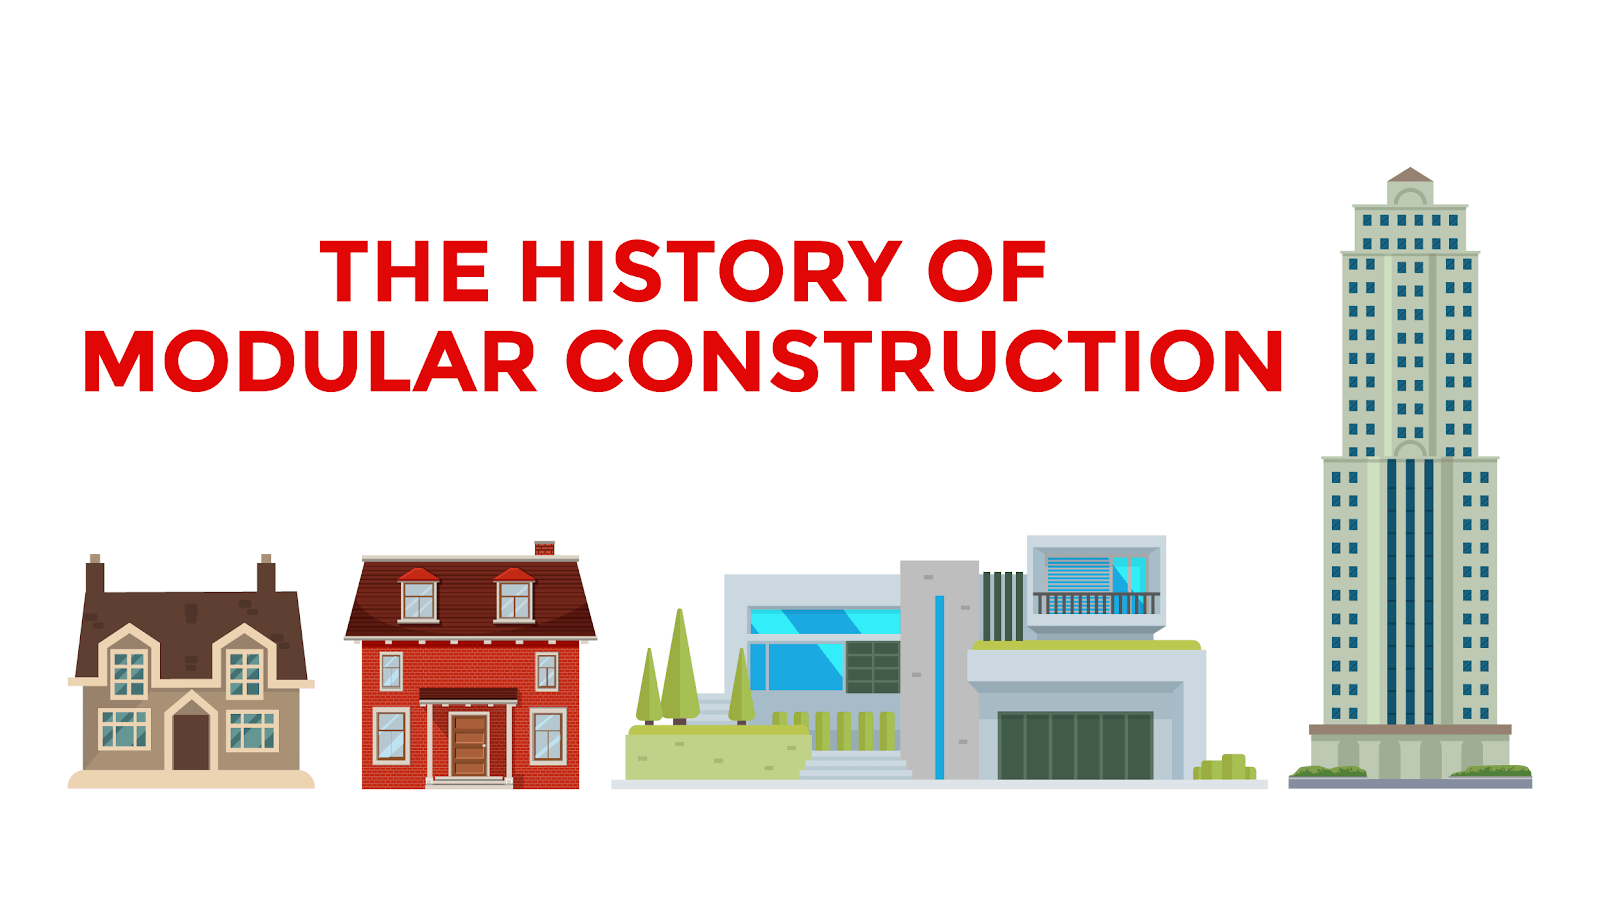 the history of modular construction with satellite shelters